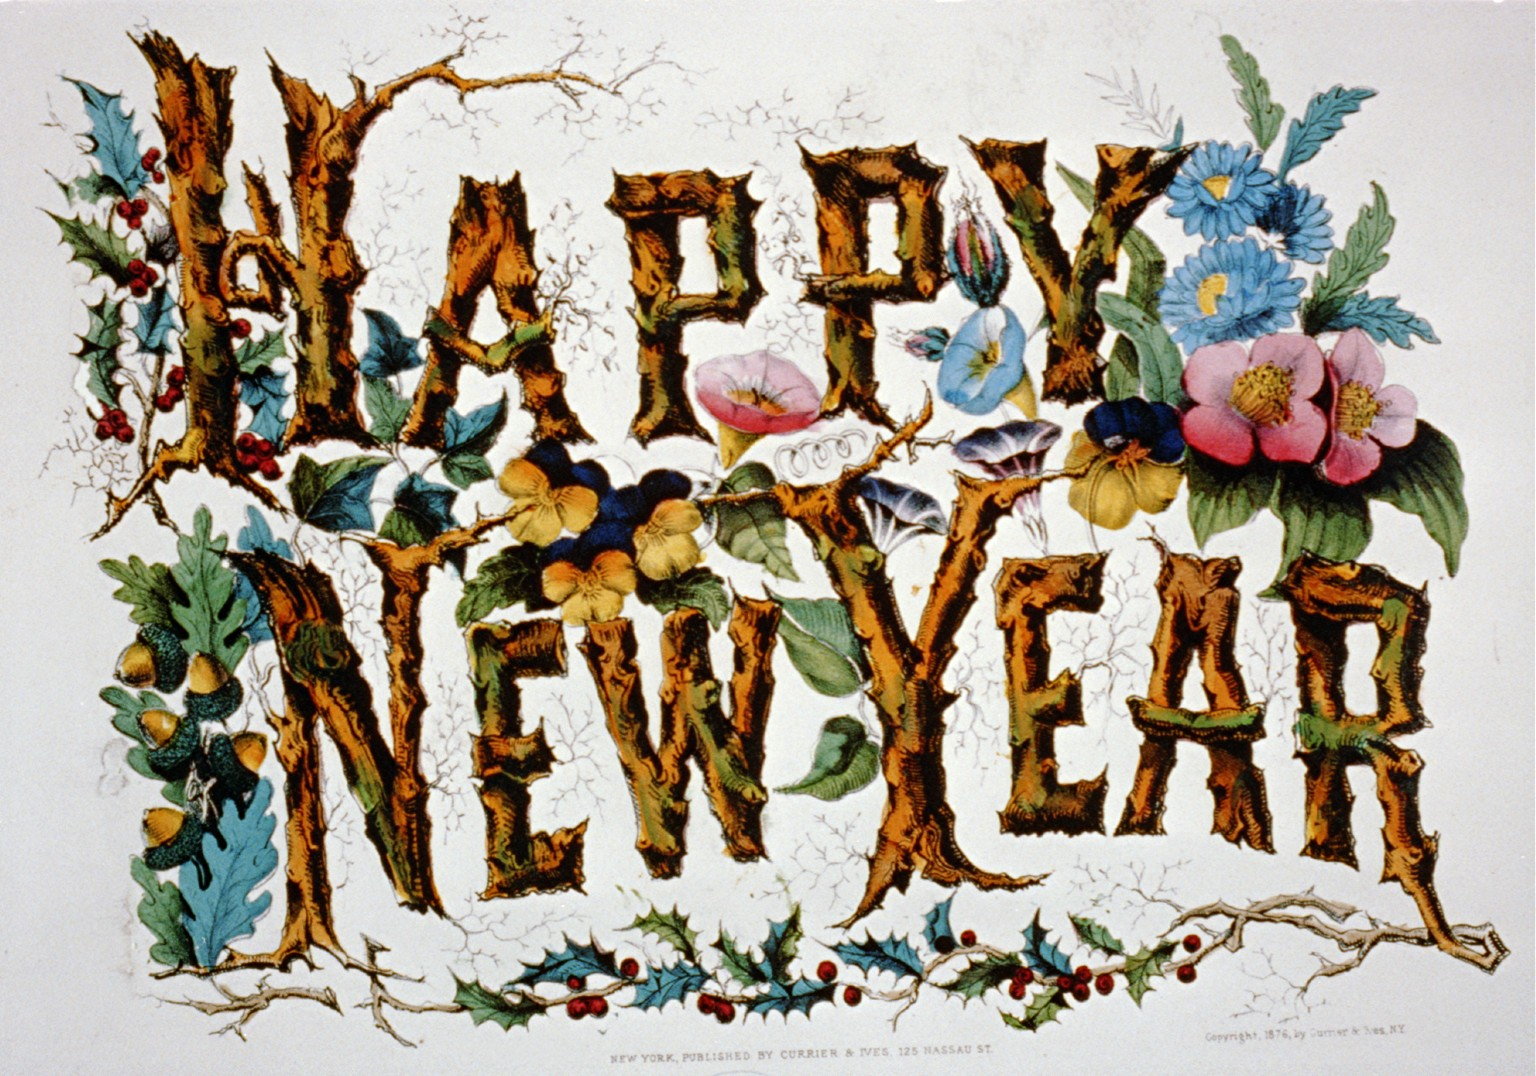 happy new year currier ives lithograph mid 19th century